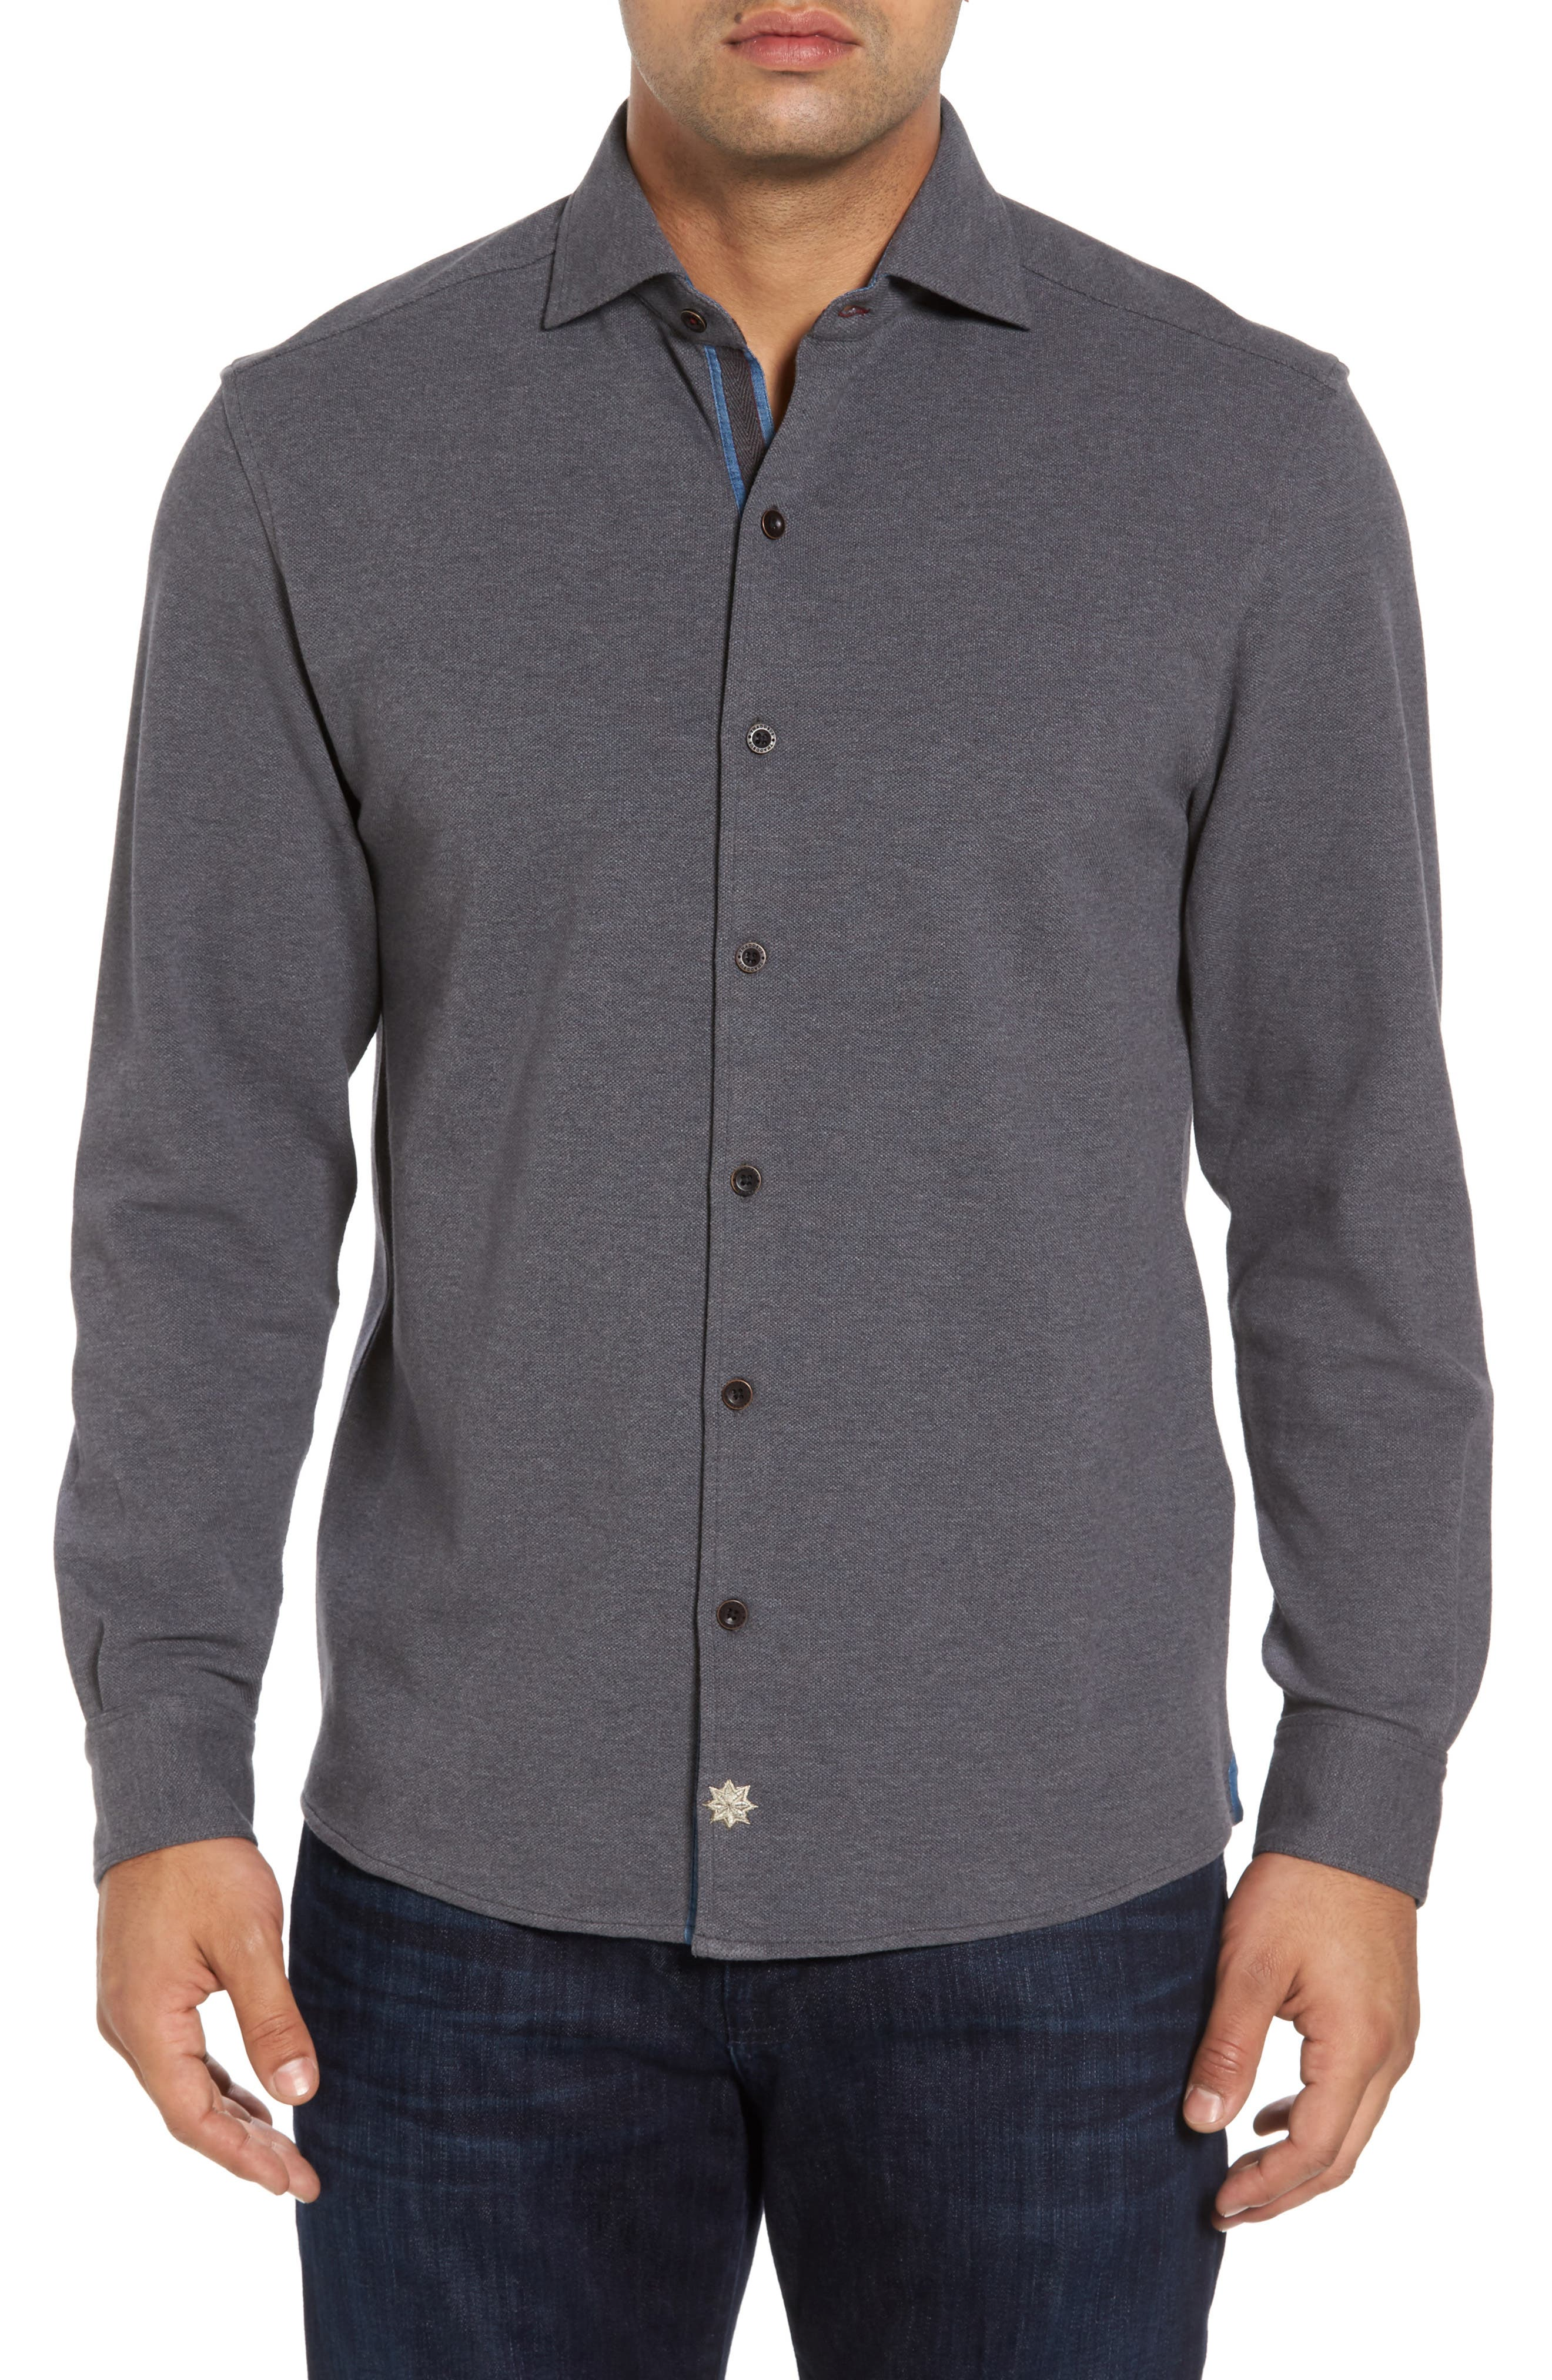 Shandy Heathered Knit Sport Shirt,                         Main,                         color, 014